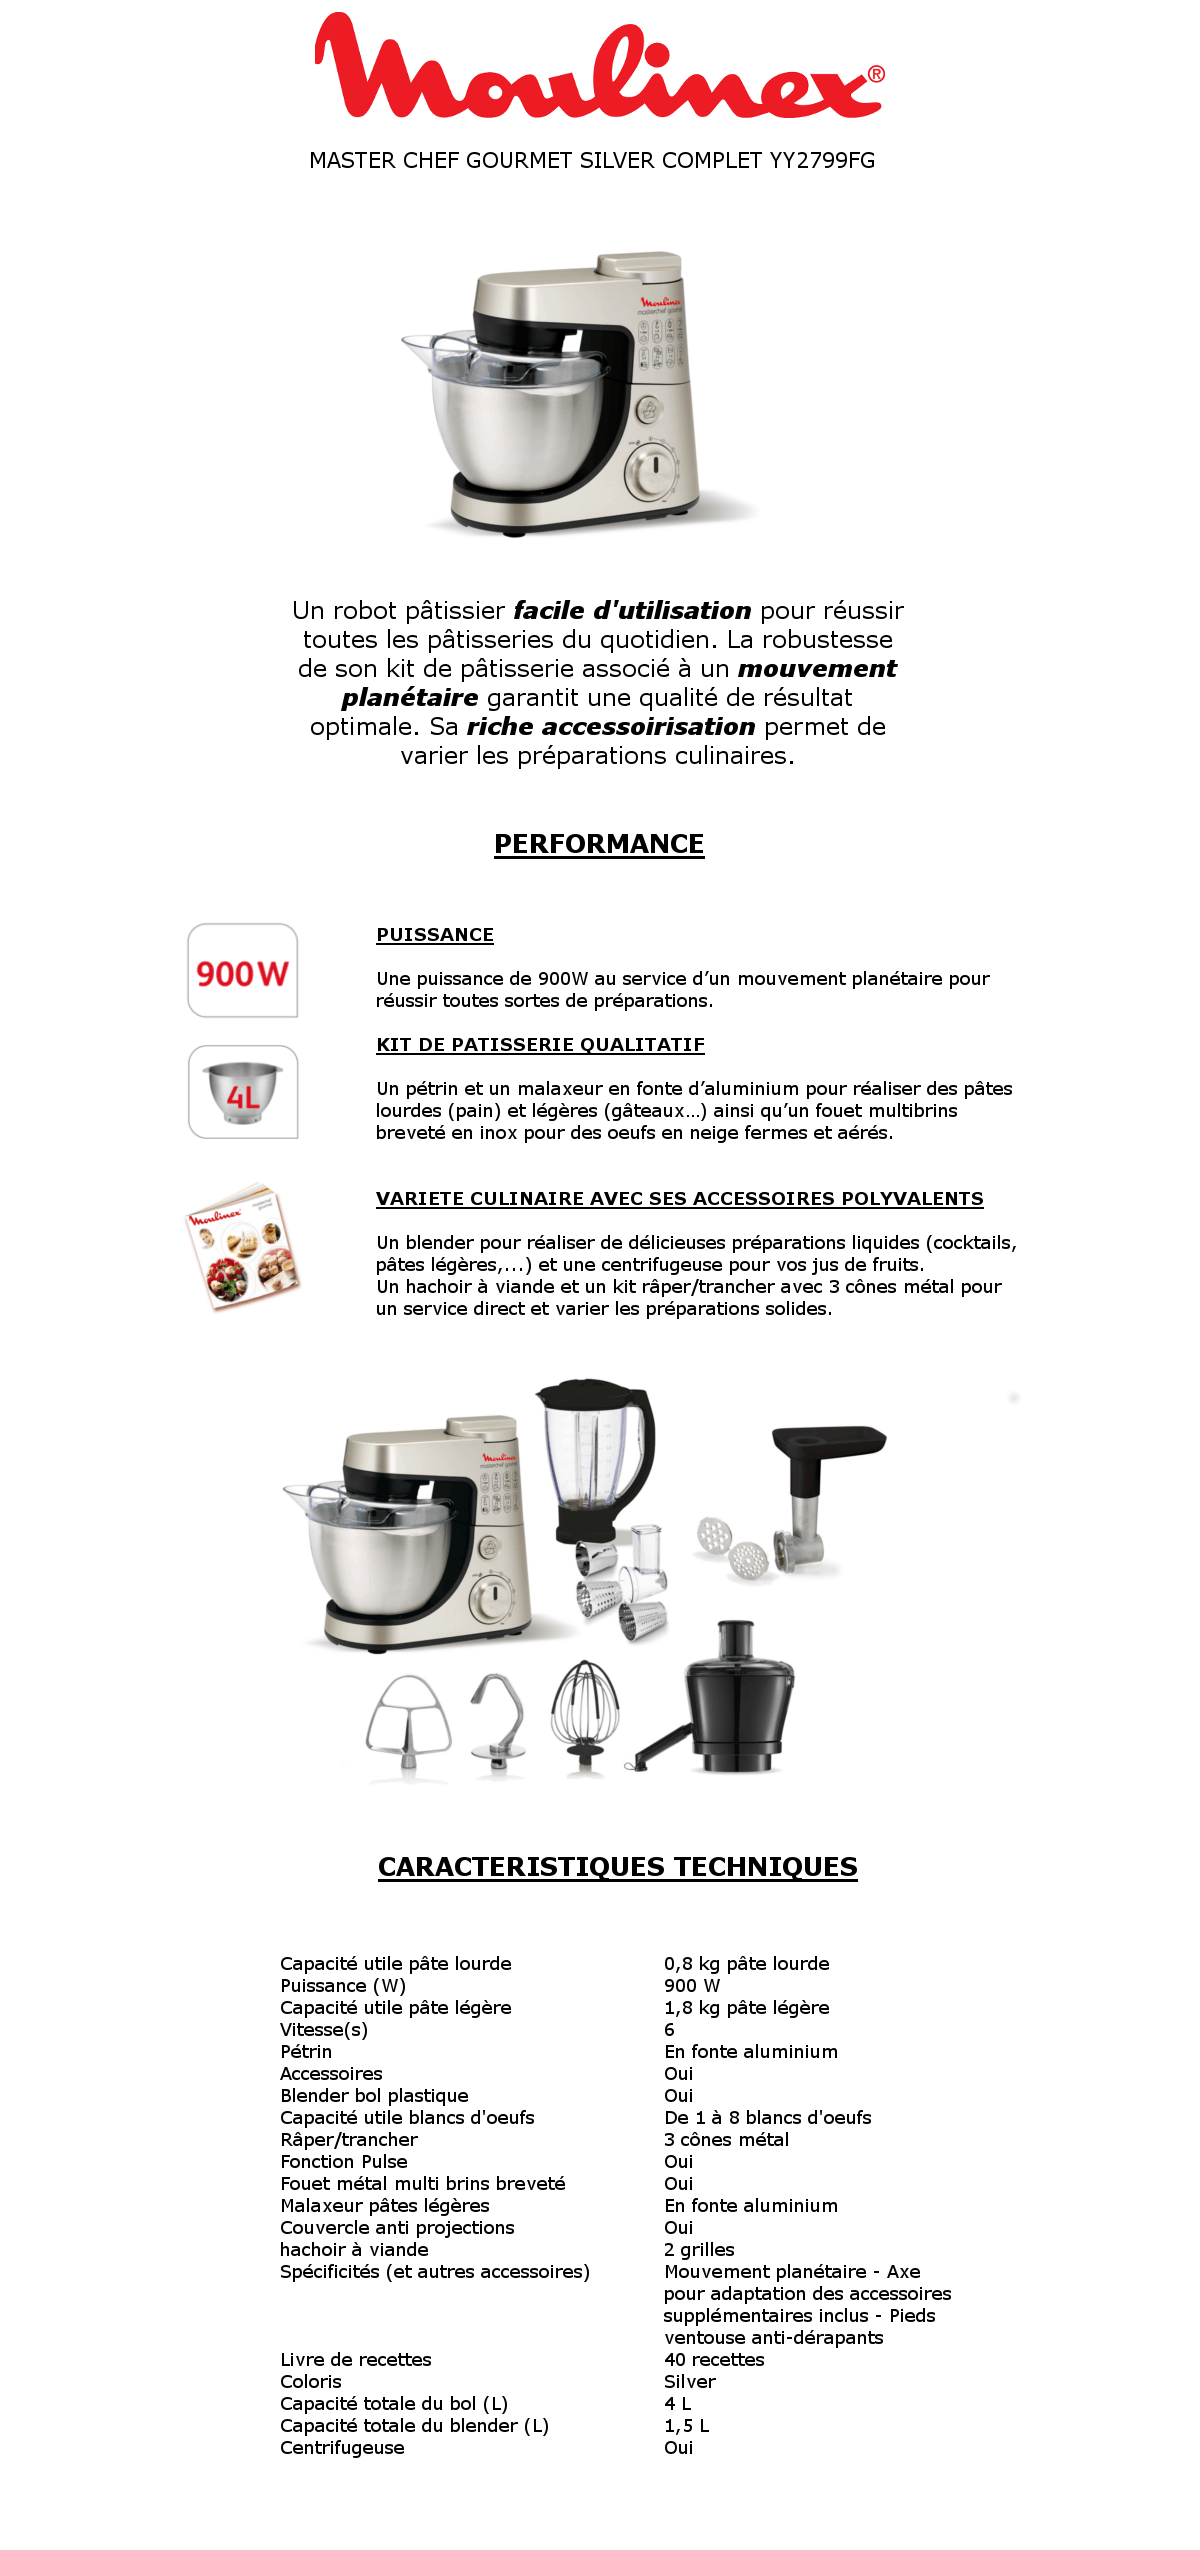 moulinex masterchef gourmet silver complet yy2799fg